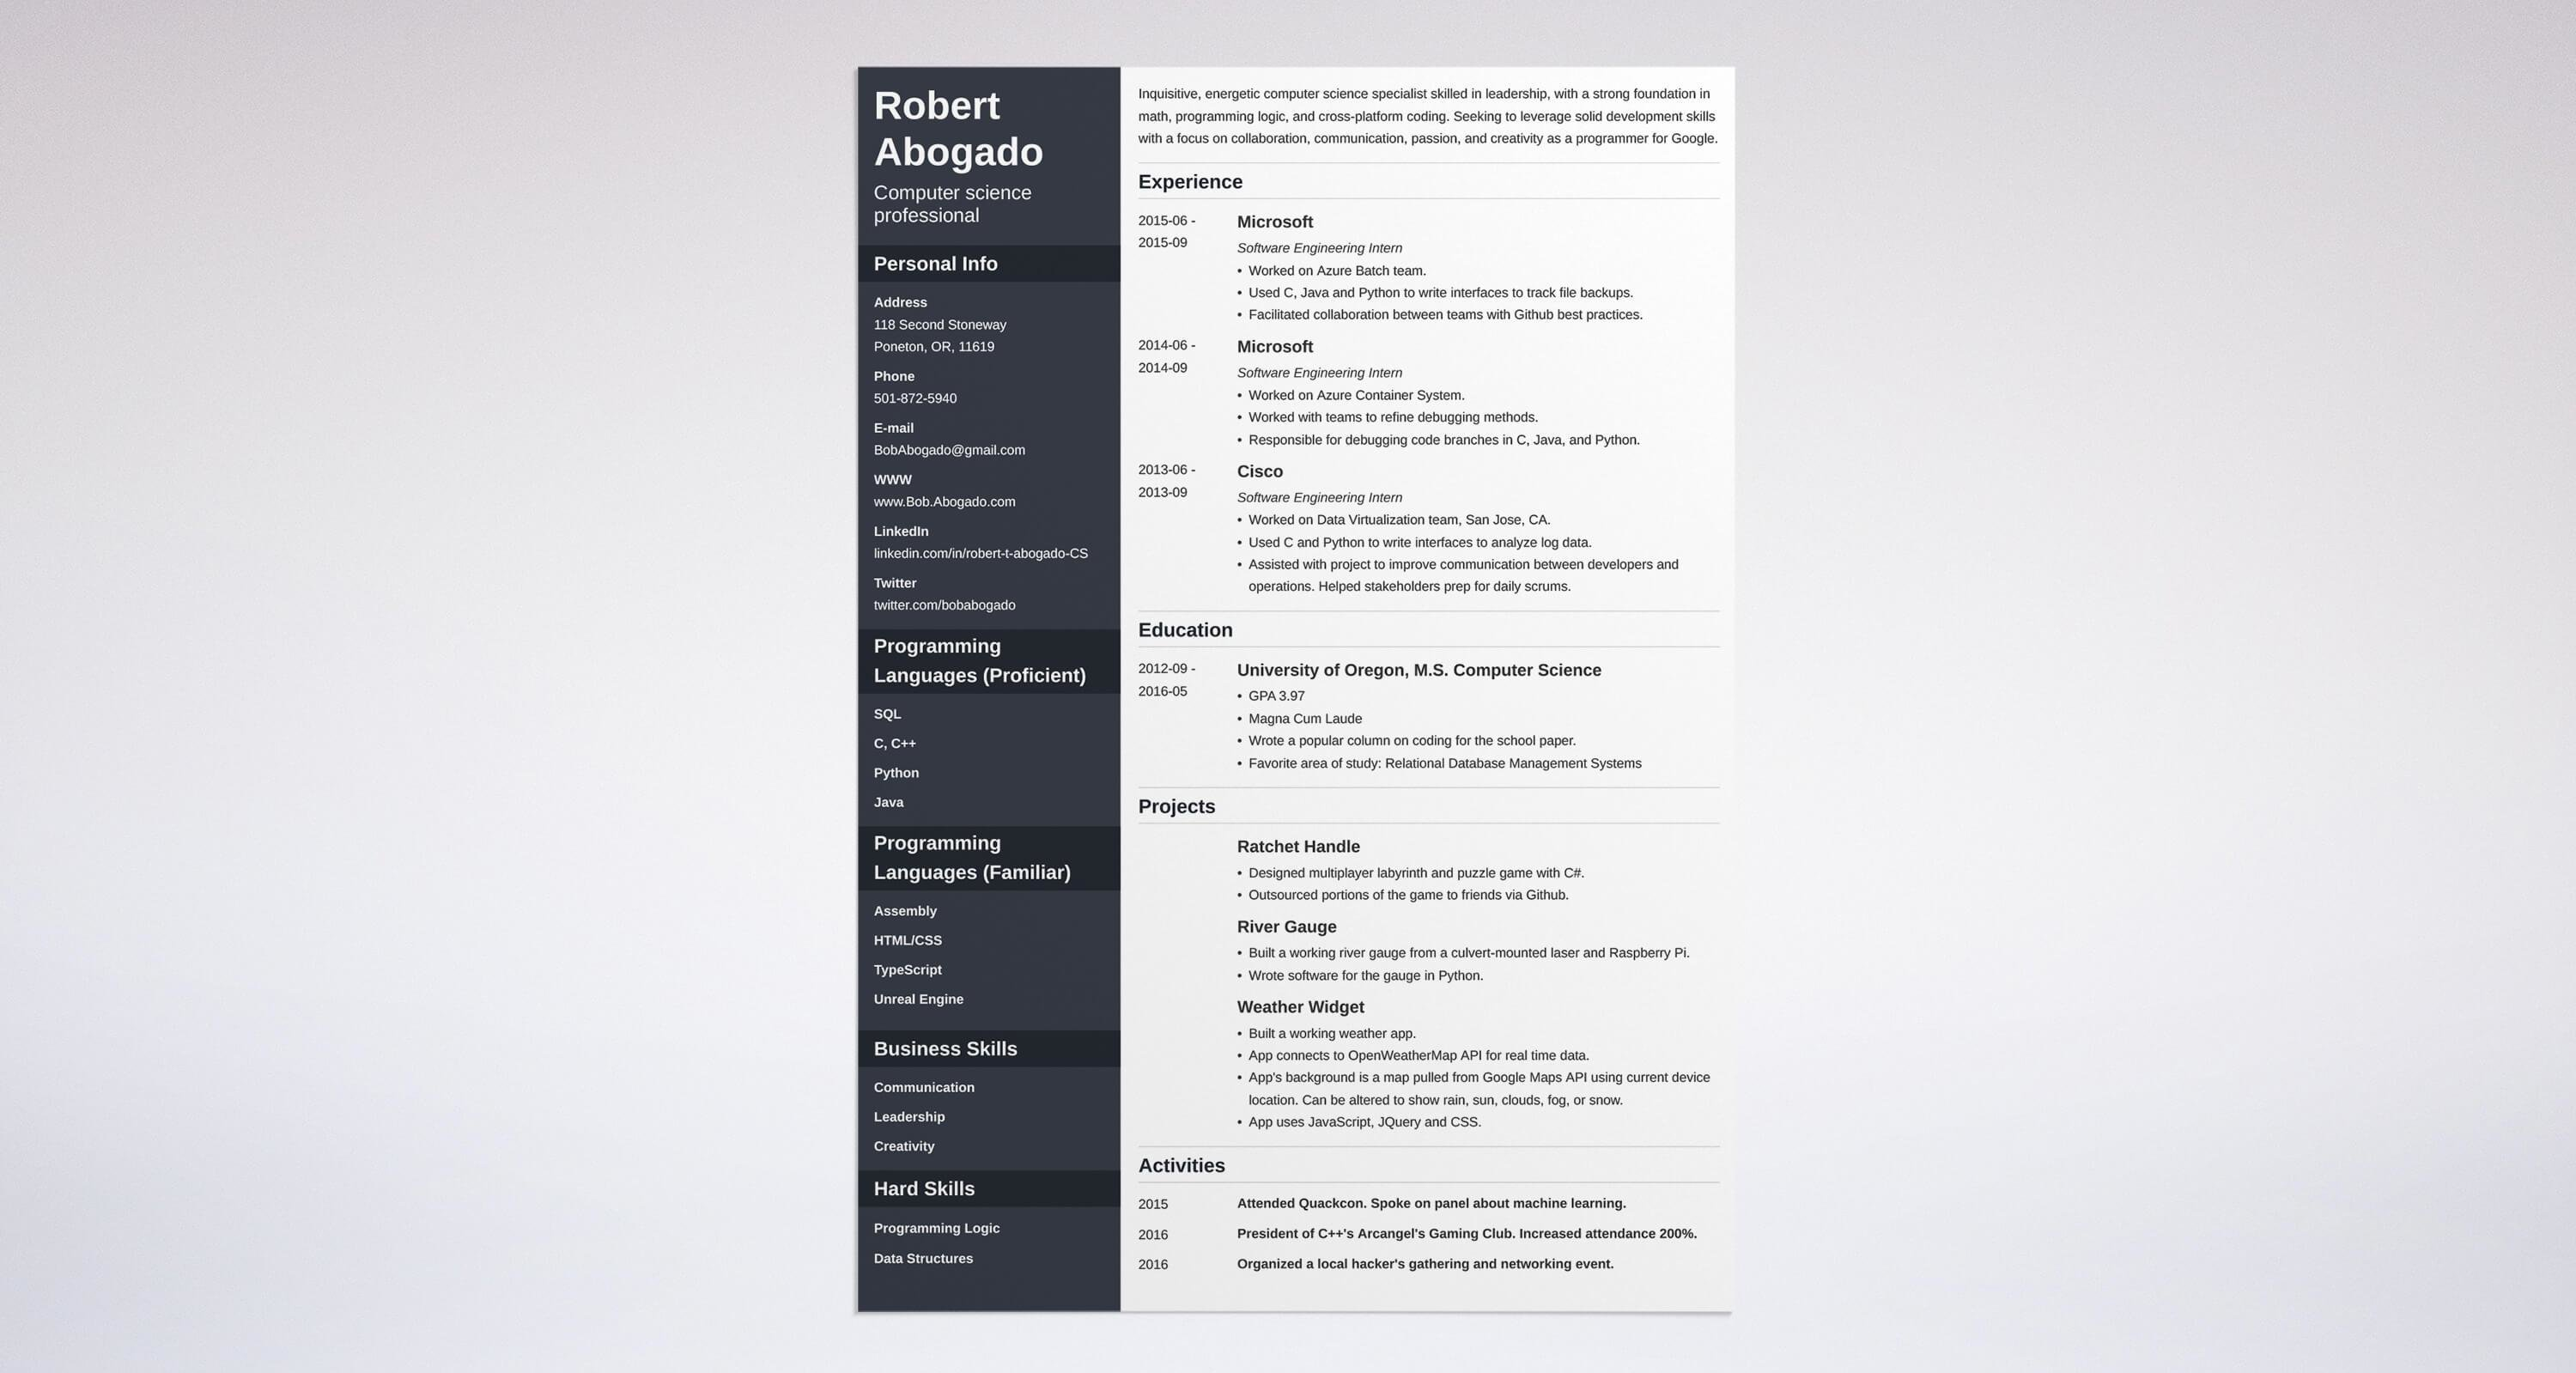 Computer Science Resume: Sample & Complete Guide [+20 Examples]